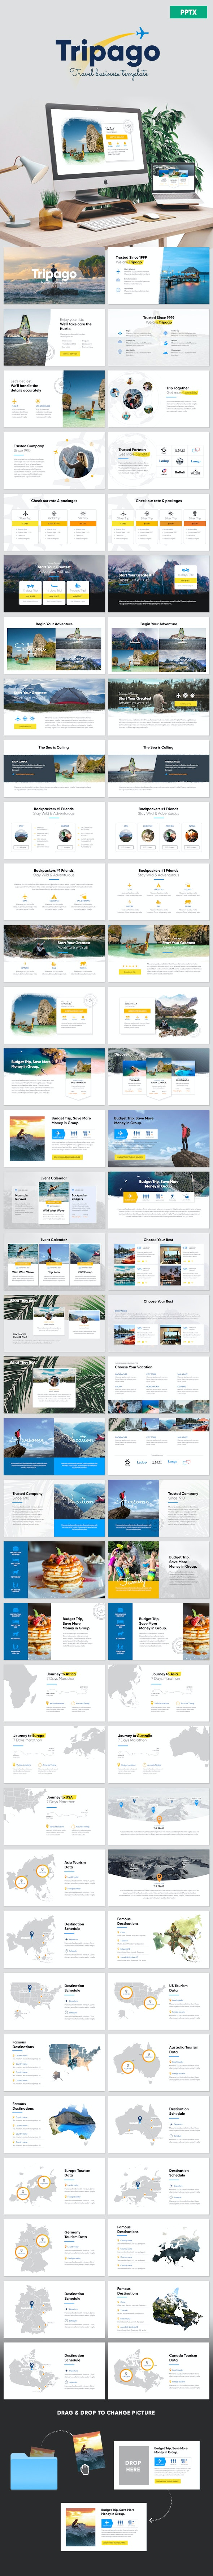 Tripago - Travelling Business Powerpoint Template - PowerPoint Templates Presentation Templates